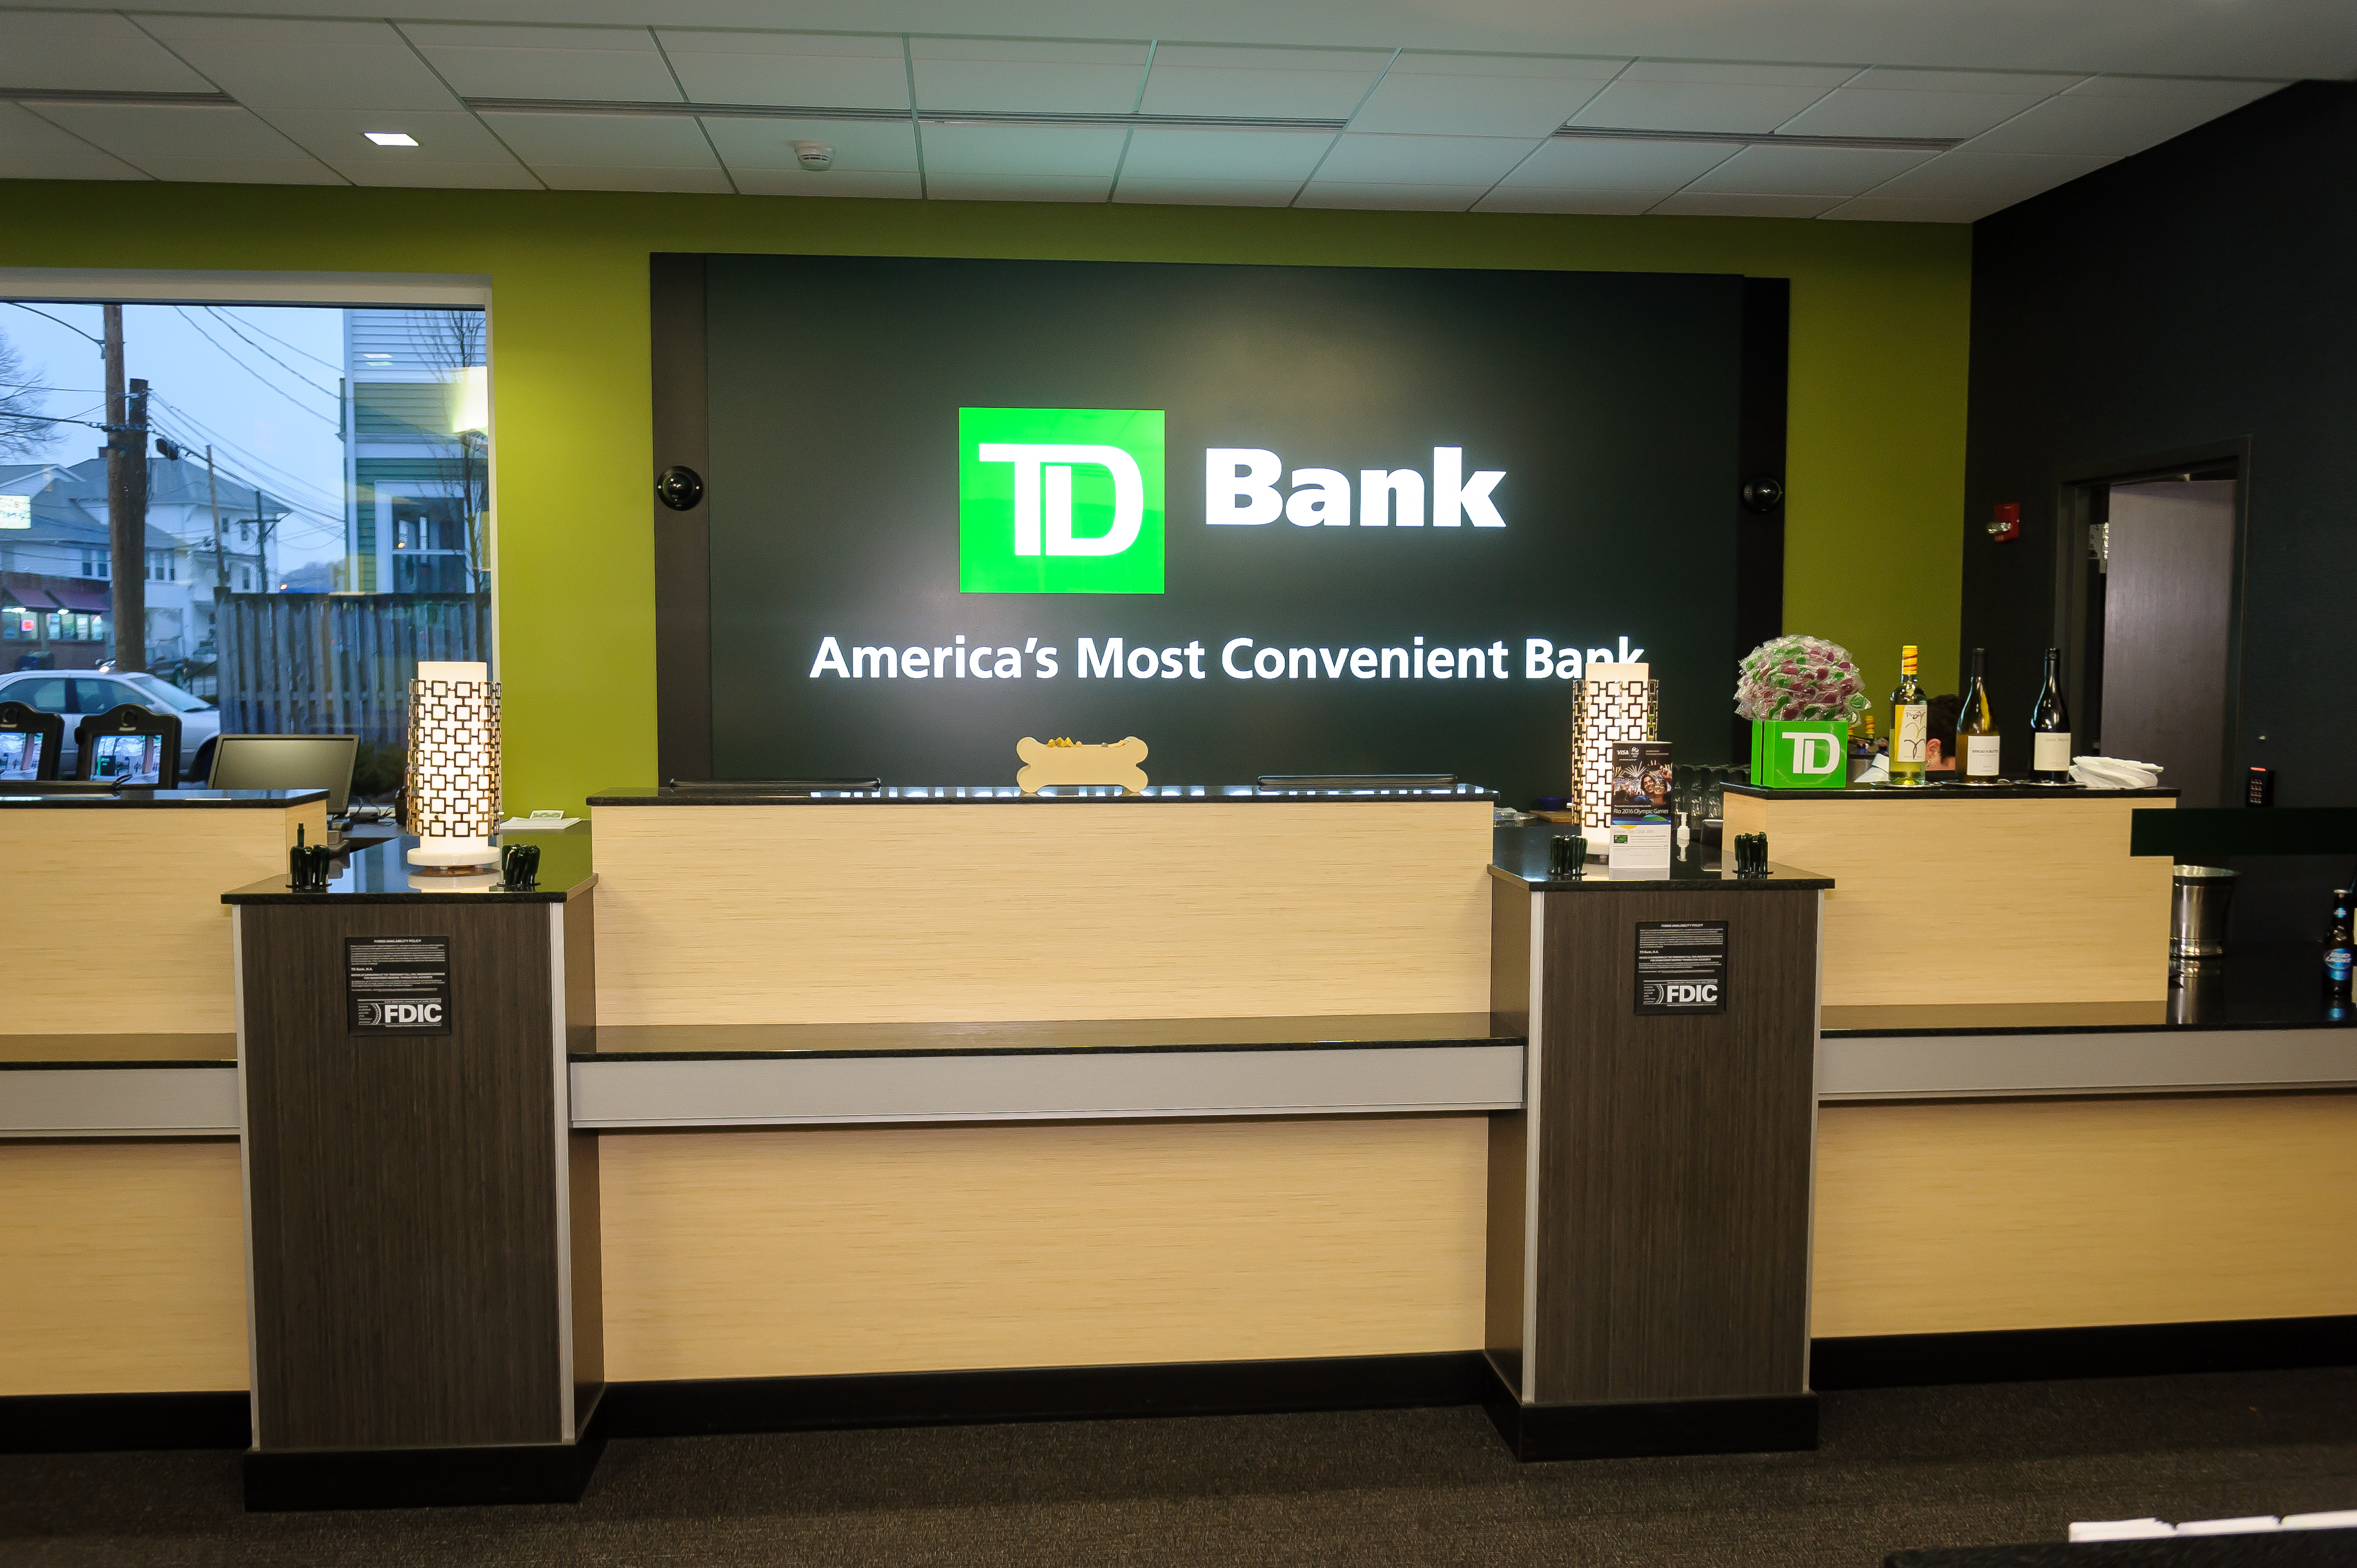 032016 TD North Bank Watertown Belmont Chamber of CommerceMA